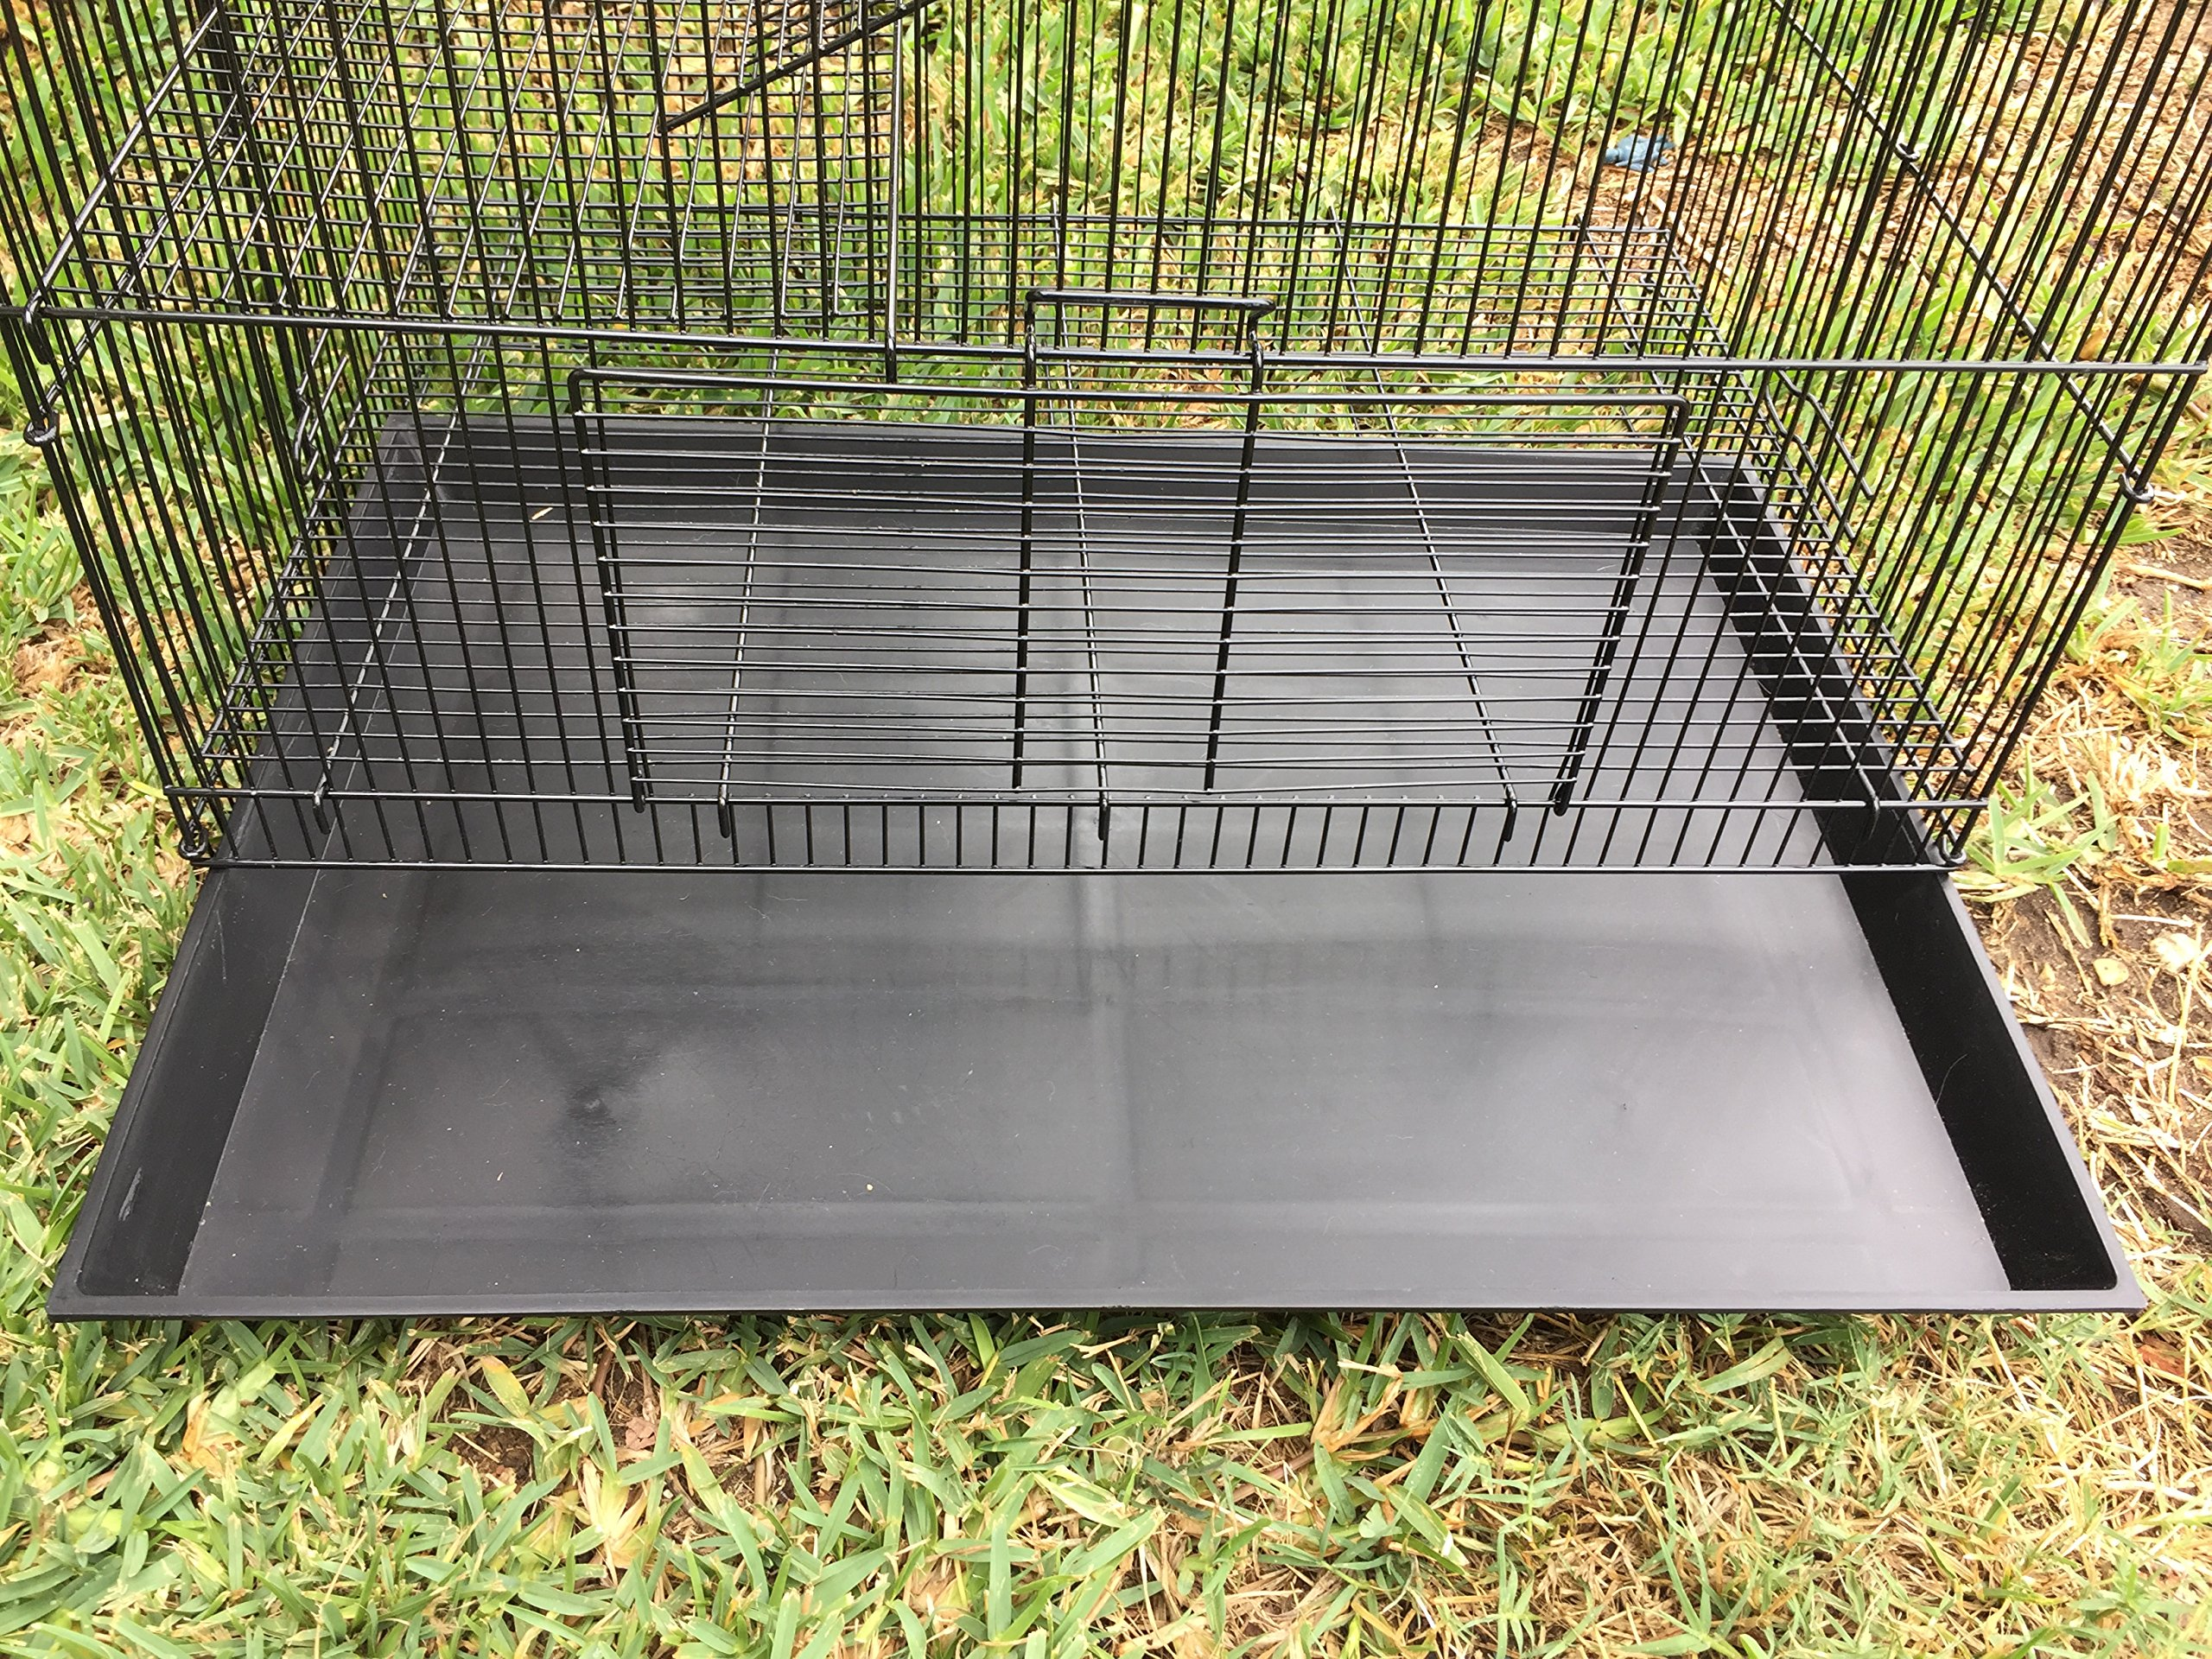 New Medium 3 Levels Ferret Chinchilla Sugar Glider Cage 24'' Length x 16'' Depth x 24'' Height by Mcage (Image #6)